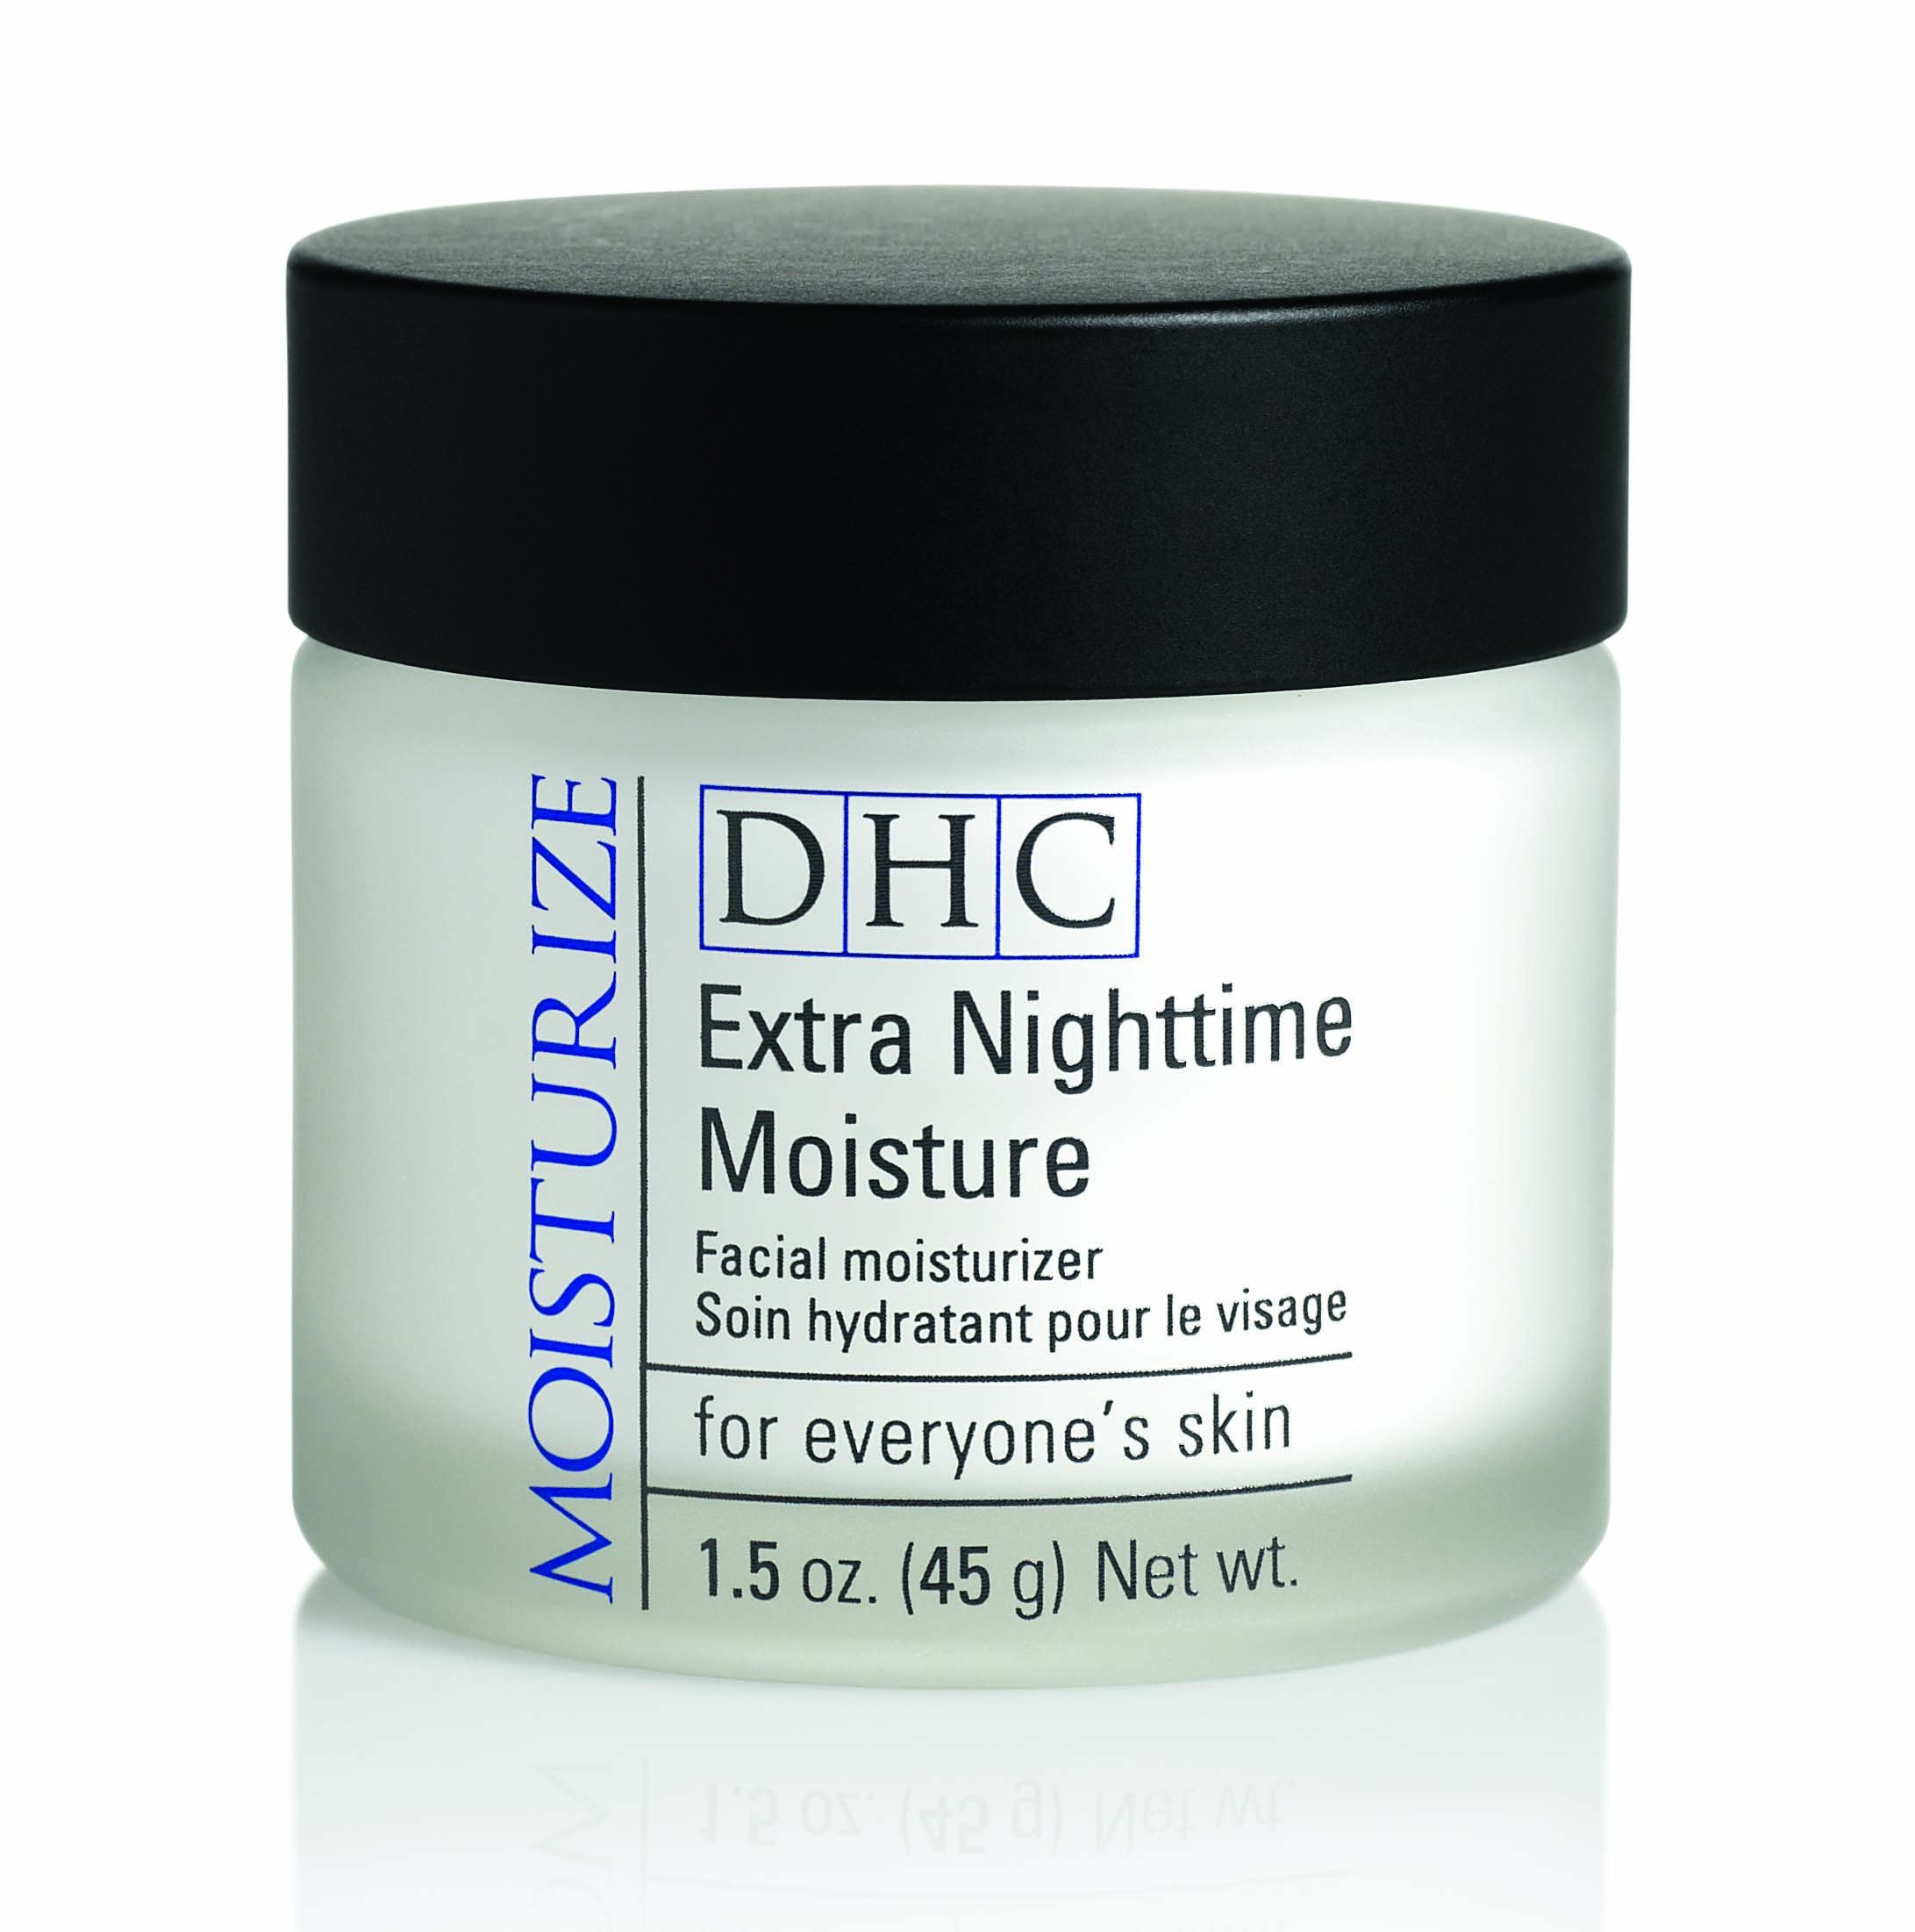 DHC Extra Nighttime Moisture, Intensive Face Cream, 1.5 oz.